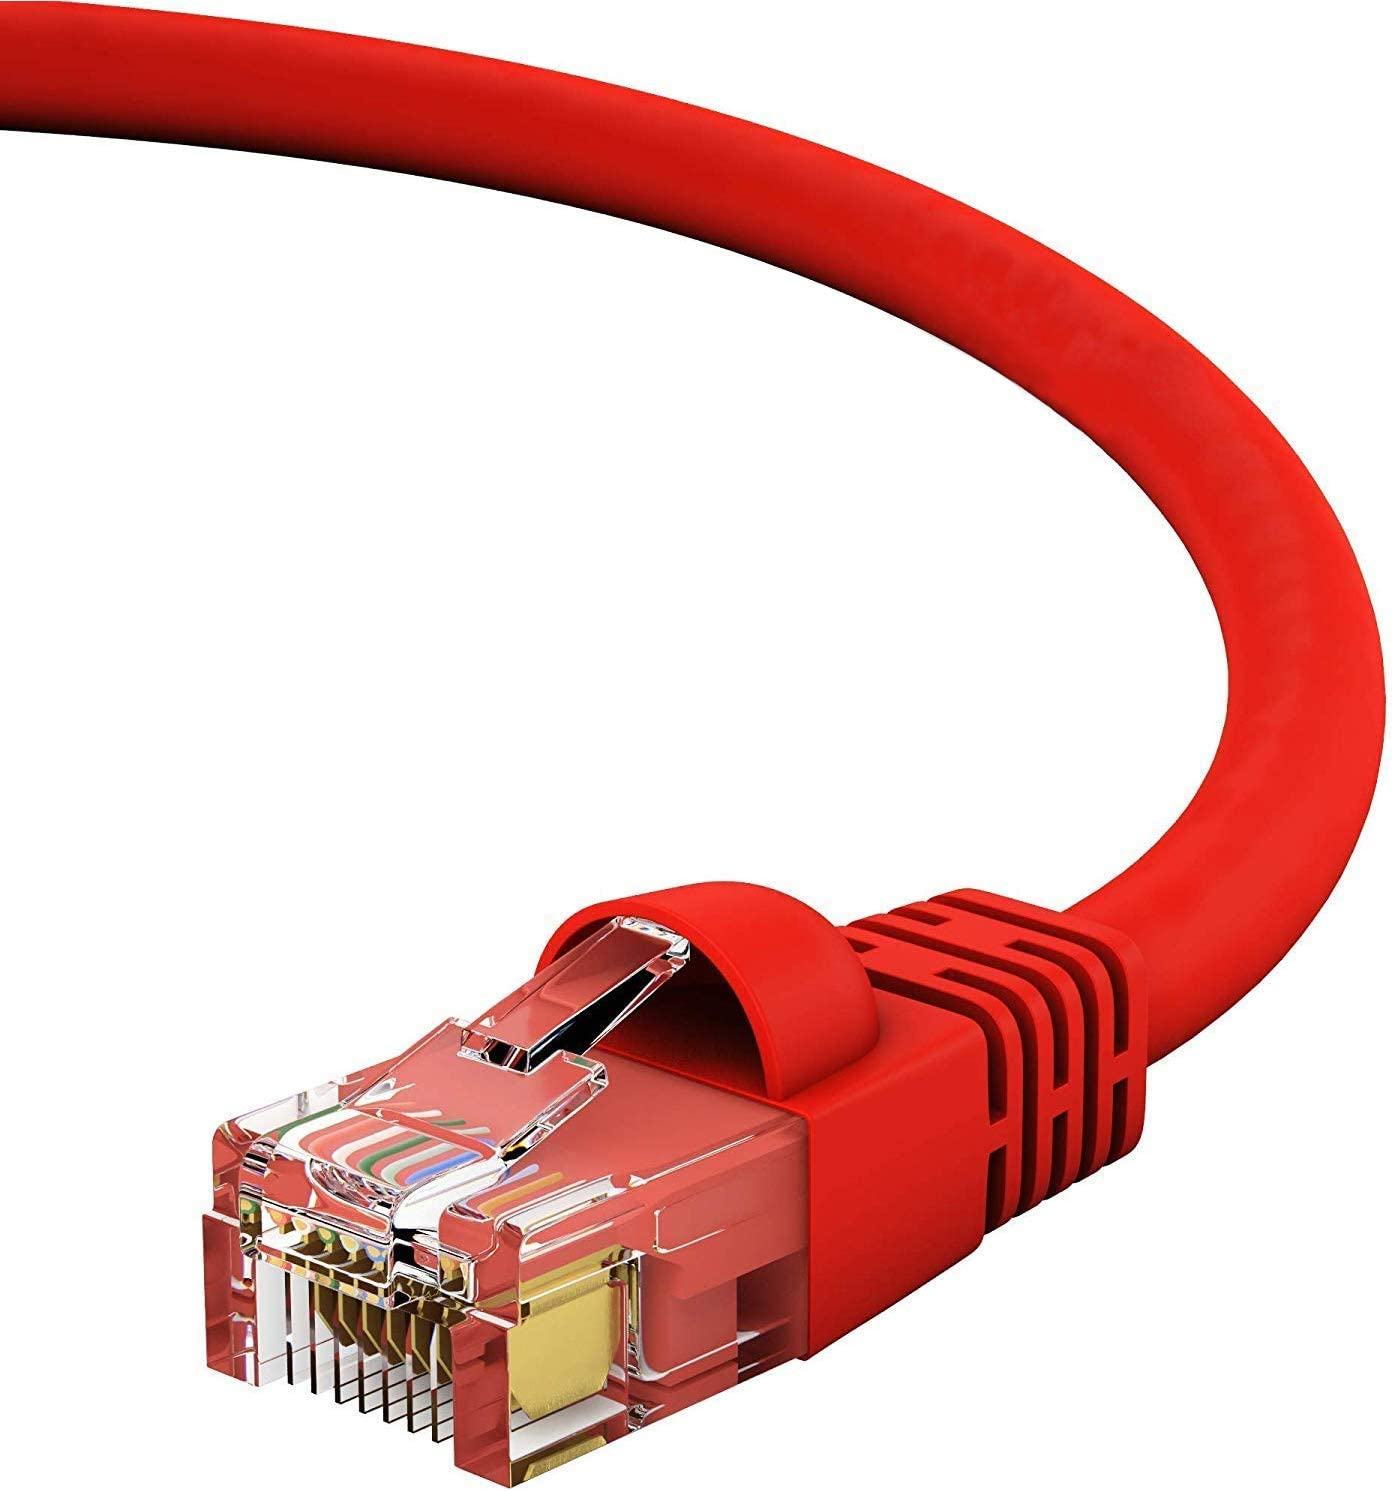 GOWOS Cat6 Ethernet Cable 10-Pack - 1.5 FT 550MHz Red 10 Gigabit//Sec High Speed LAN Internet//Patch Cable 24AWG Network Cable with Gold Plated RJ45 Snagless//Molded//Booted Connector